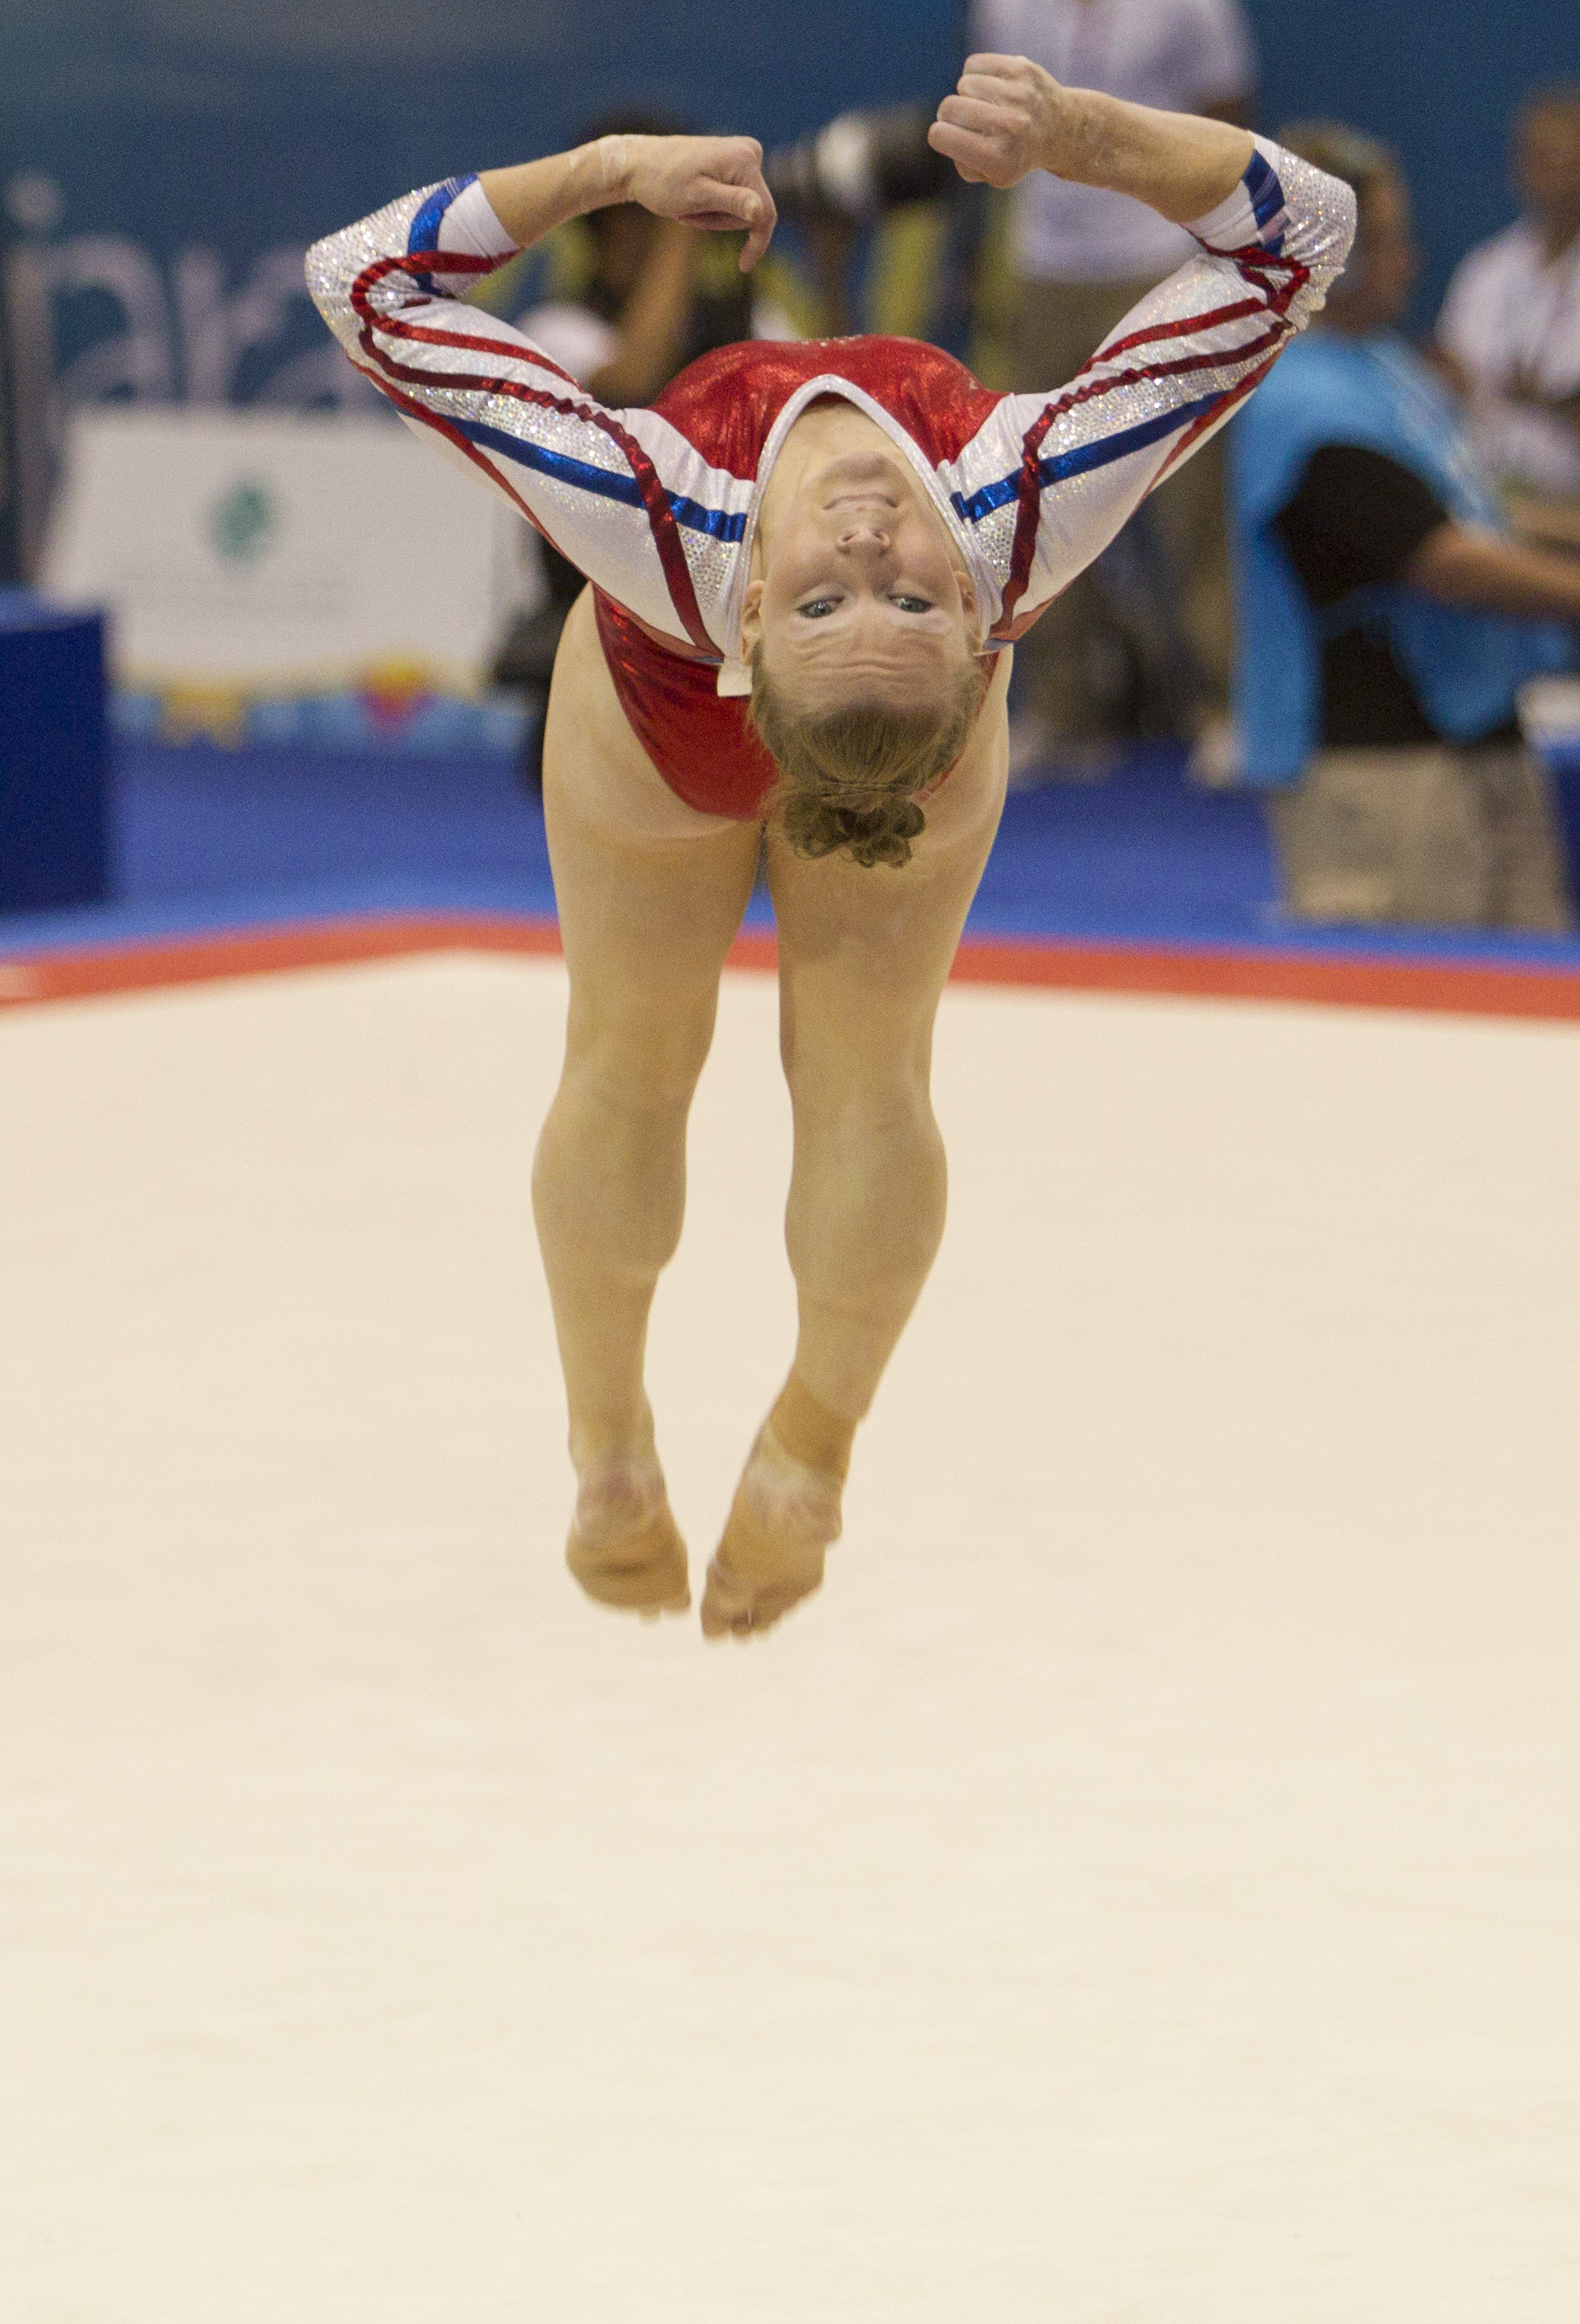 Shawn Johnson @ the Pan Am Games in Guadalajara (5)